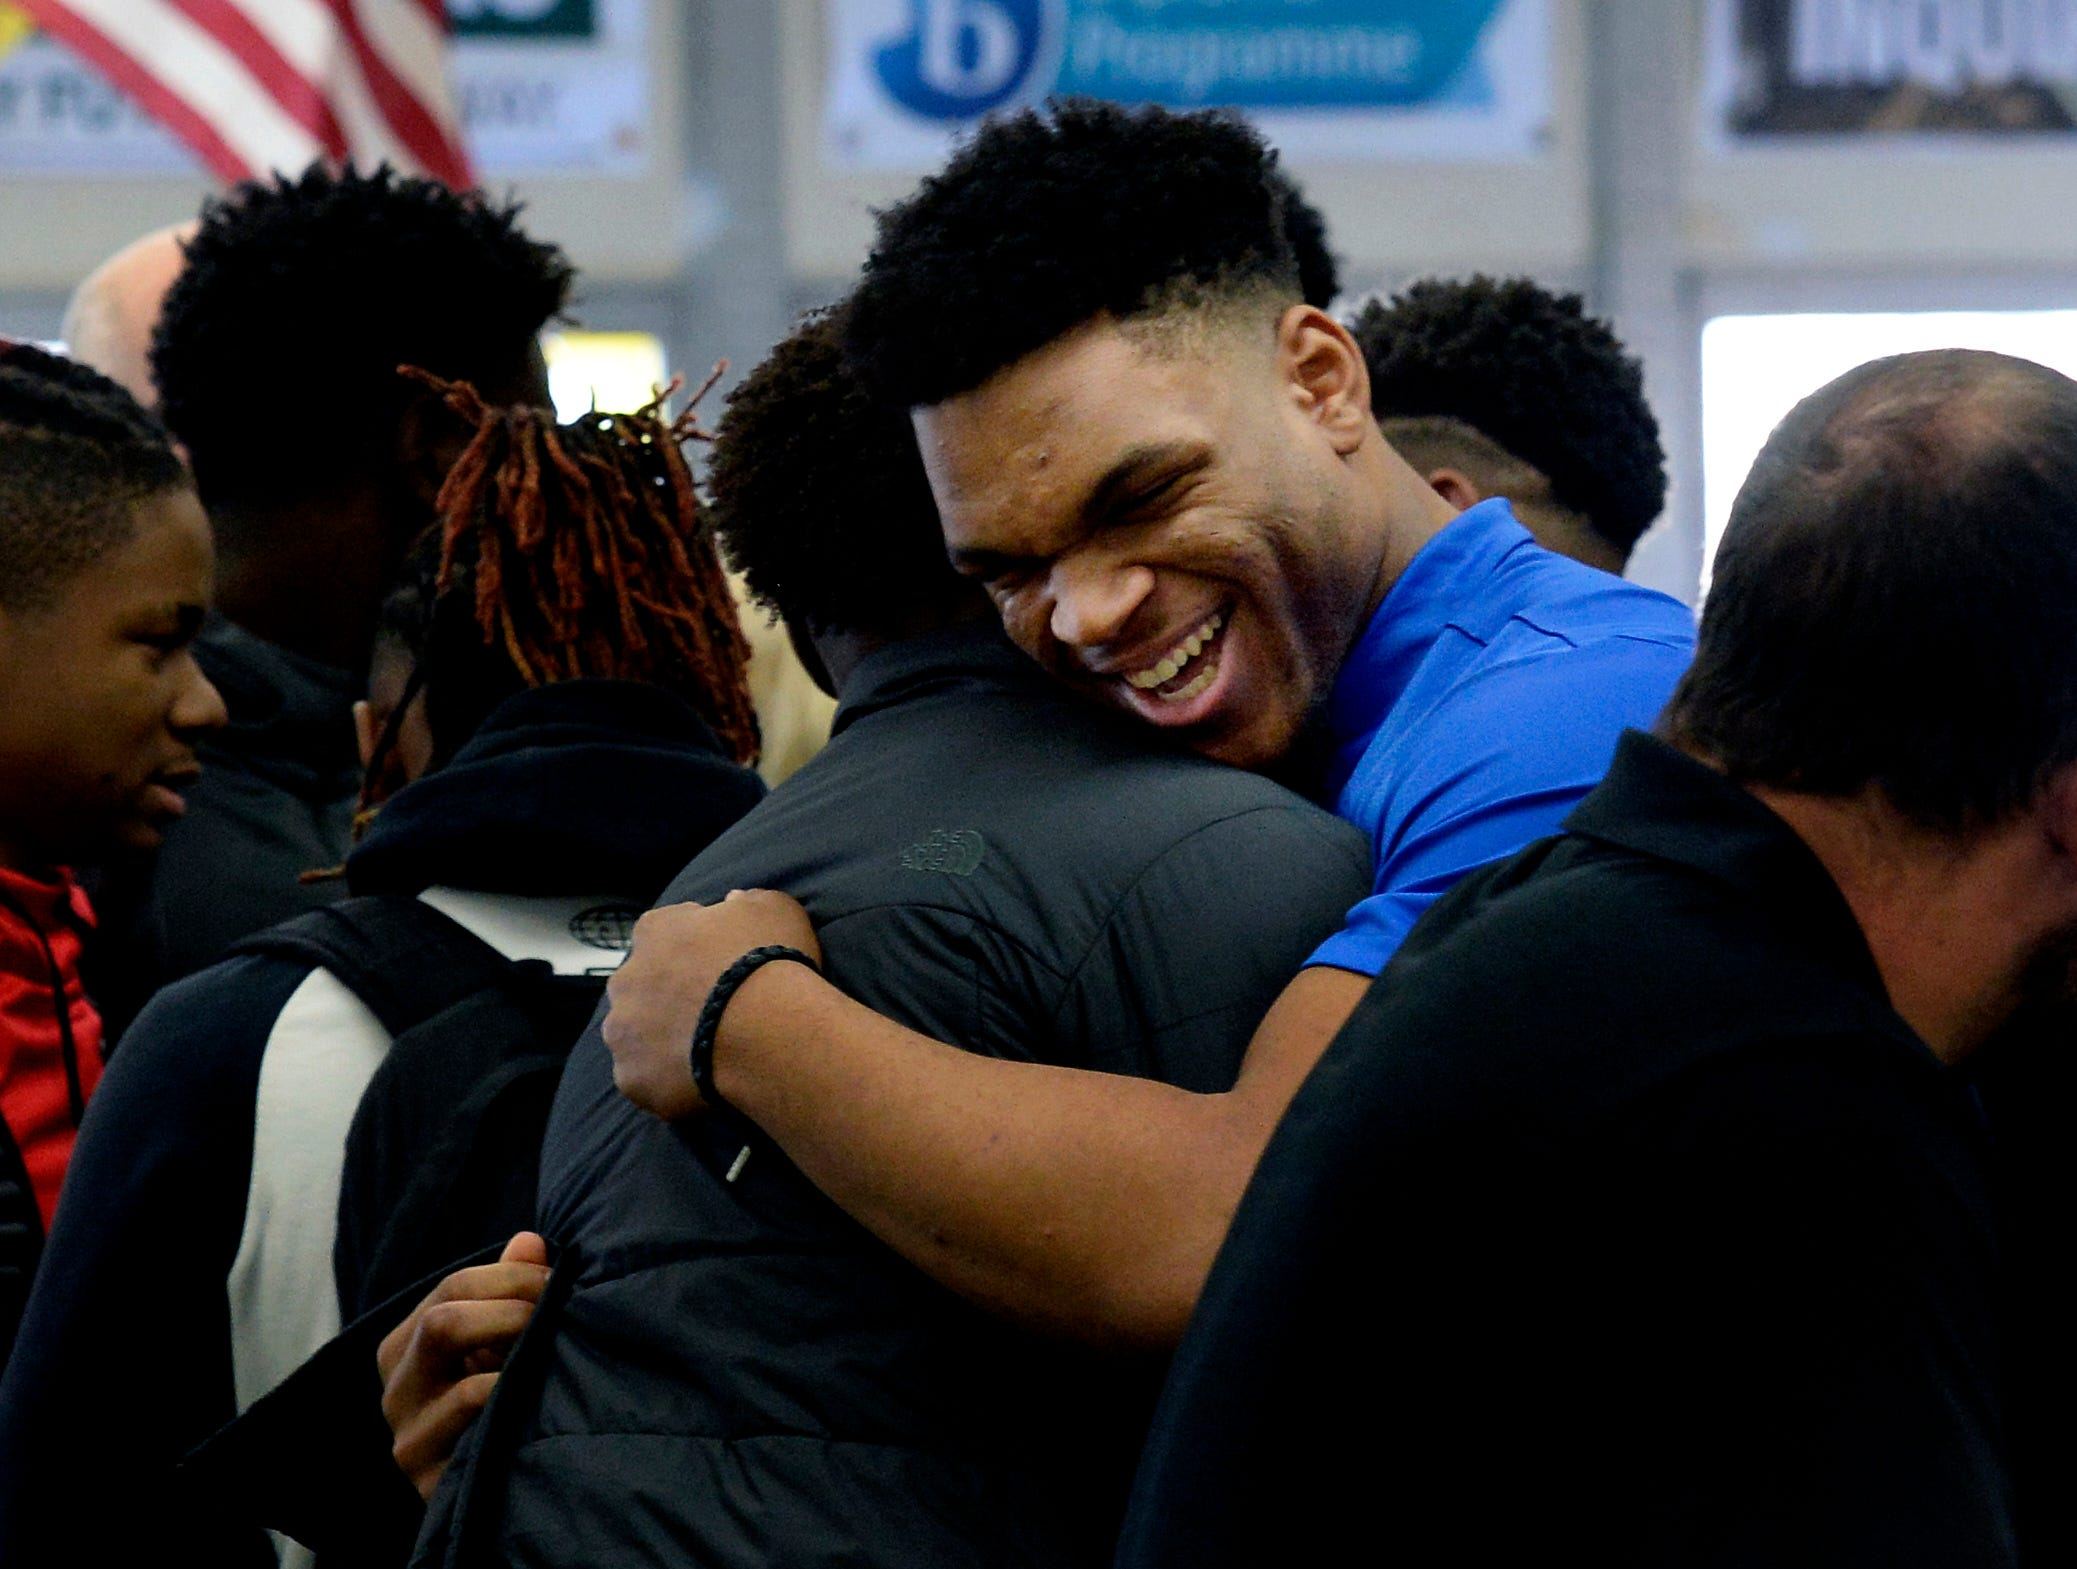 Hillsboro High School football player Joe Honeysucker is greeted before signing his national letter of intent to play football in college on Wednesday, Dec. 19, 2018, in Nashville,Tenn. Honeysucker is signing to play for Memphis. Teammate Donald Fitzgerald, who played one season of high school football, is the adopted son of Hillsboro Coach Maurice Fitzgerald and is from Nigeria. He is playing for Vanderbilt.